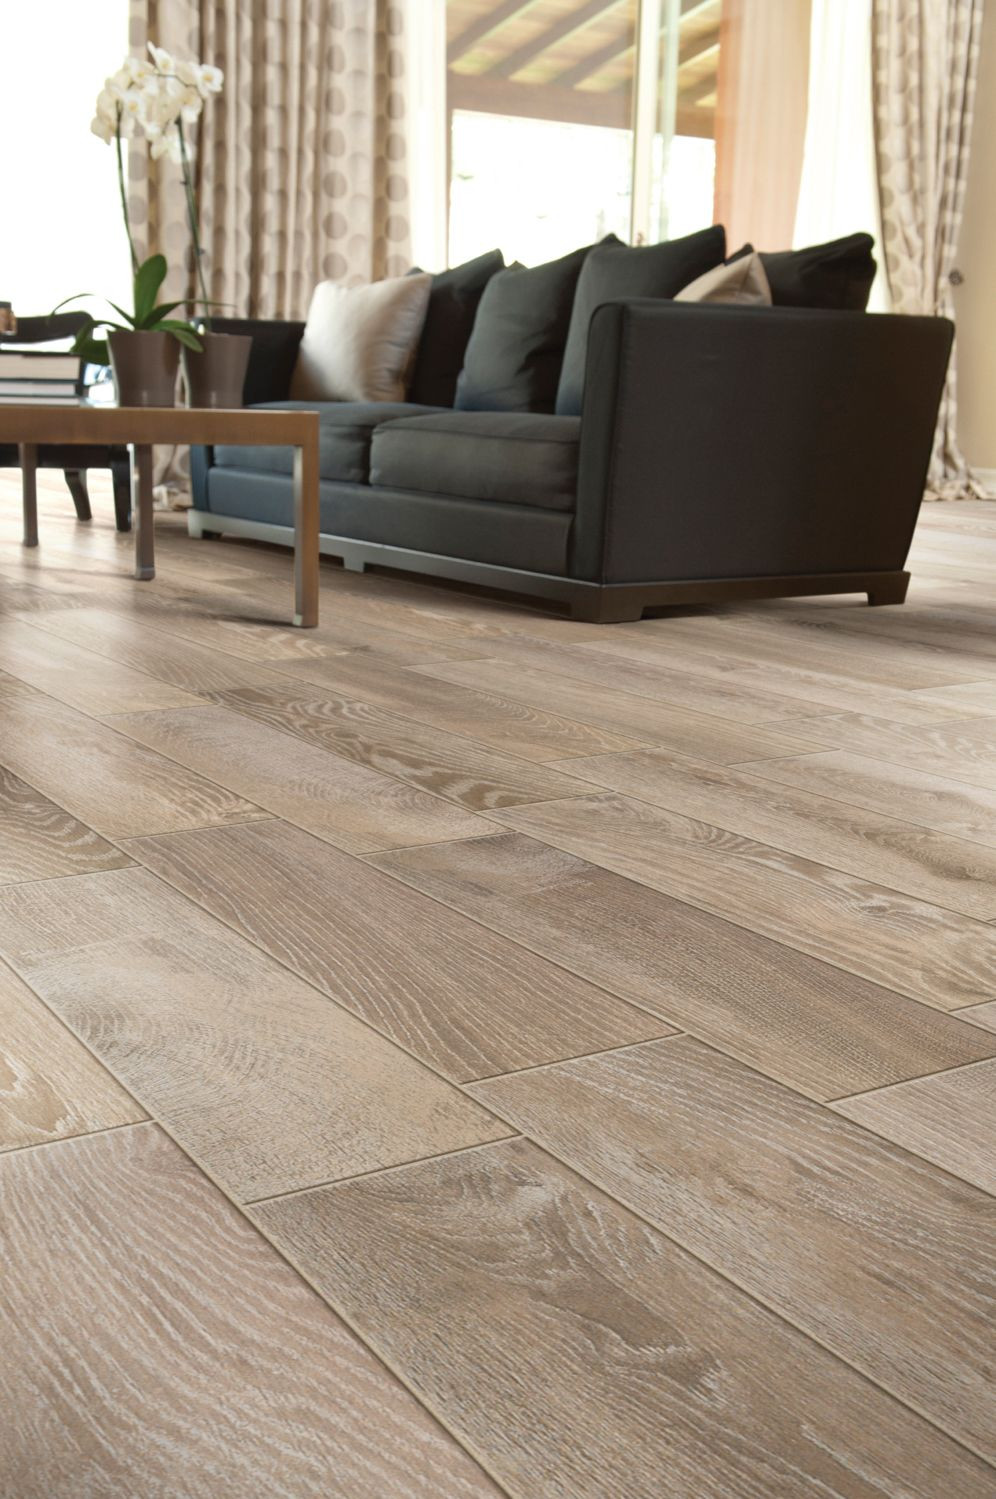 hardwood tile flooring reviews of cork underlayment premium cork sheets rolls 2017 flooring in love this tile plank flooring perfect color for weathered oak look porcelain that looks like hardwood porcelainplanks tileplanks